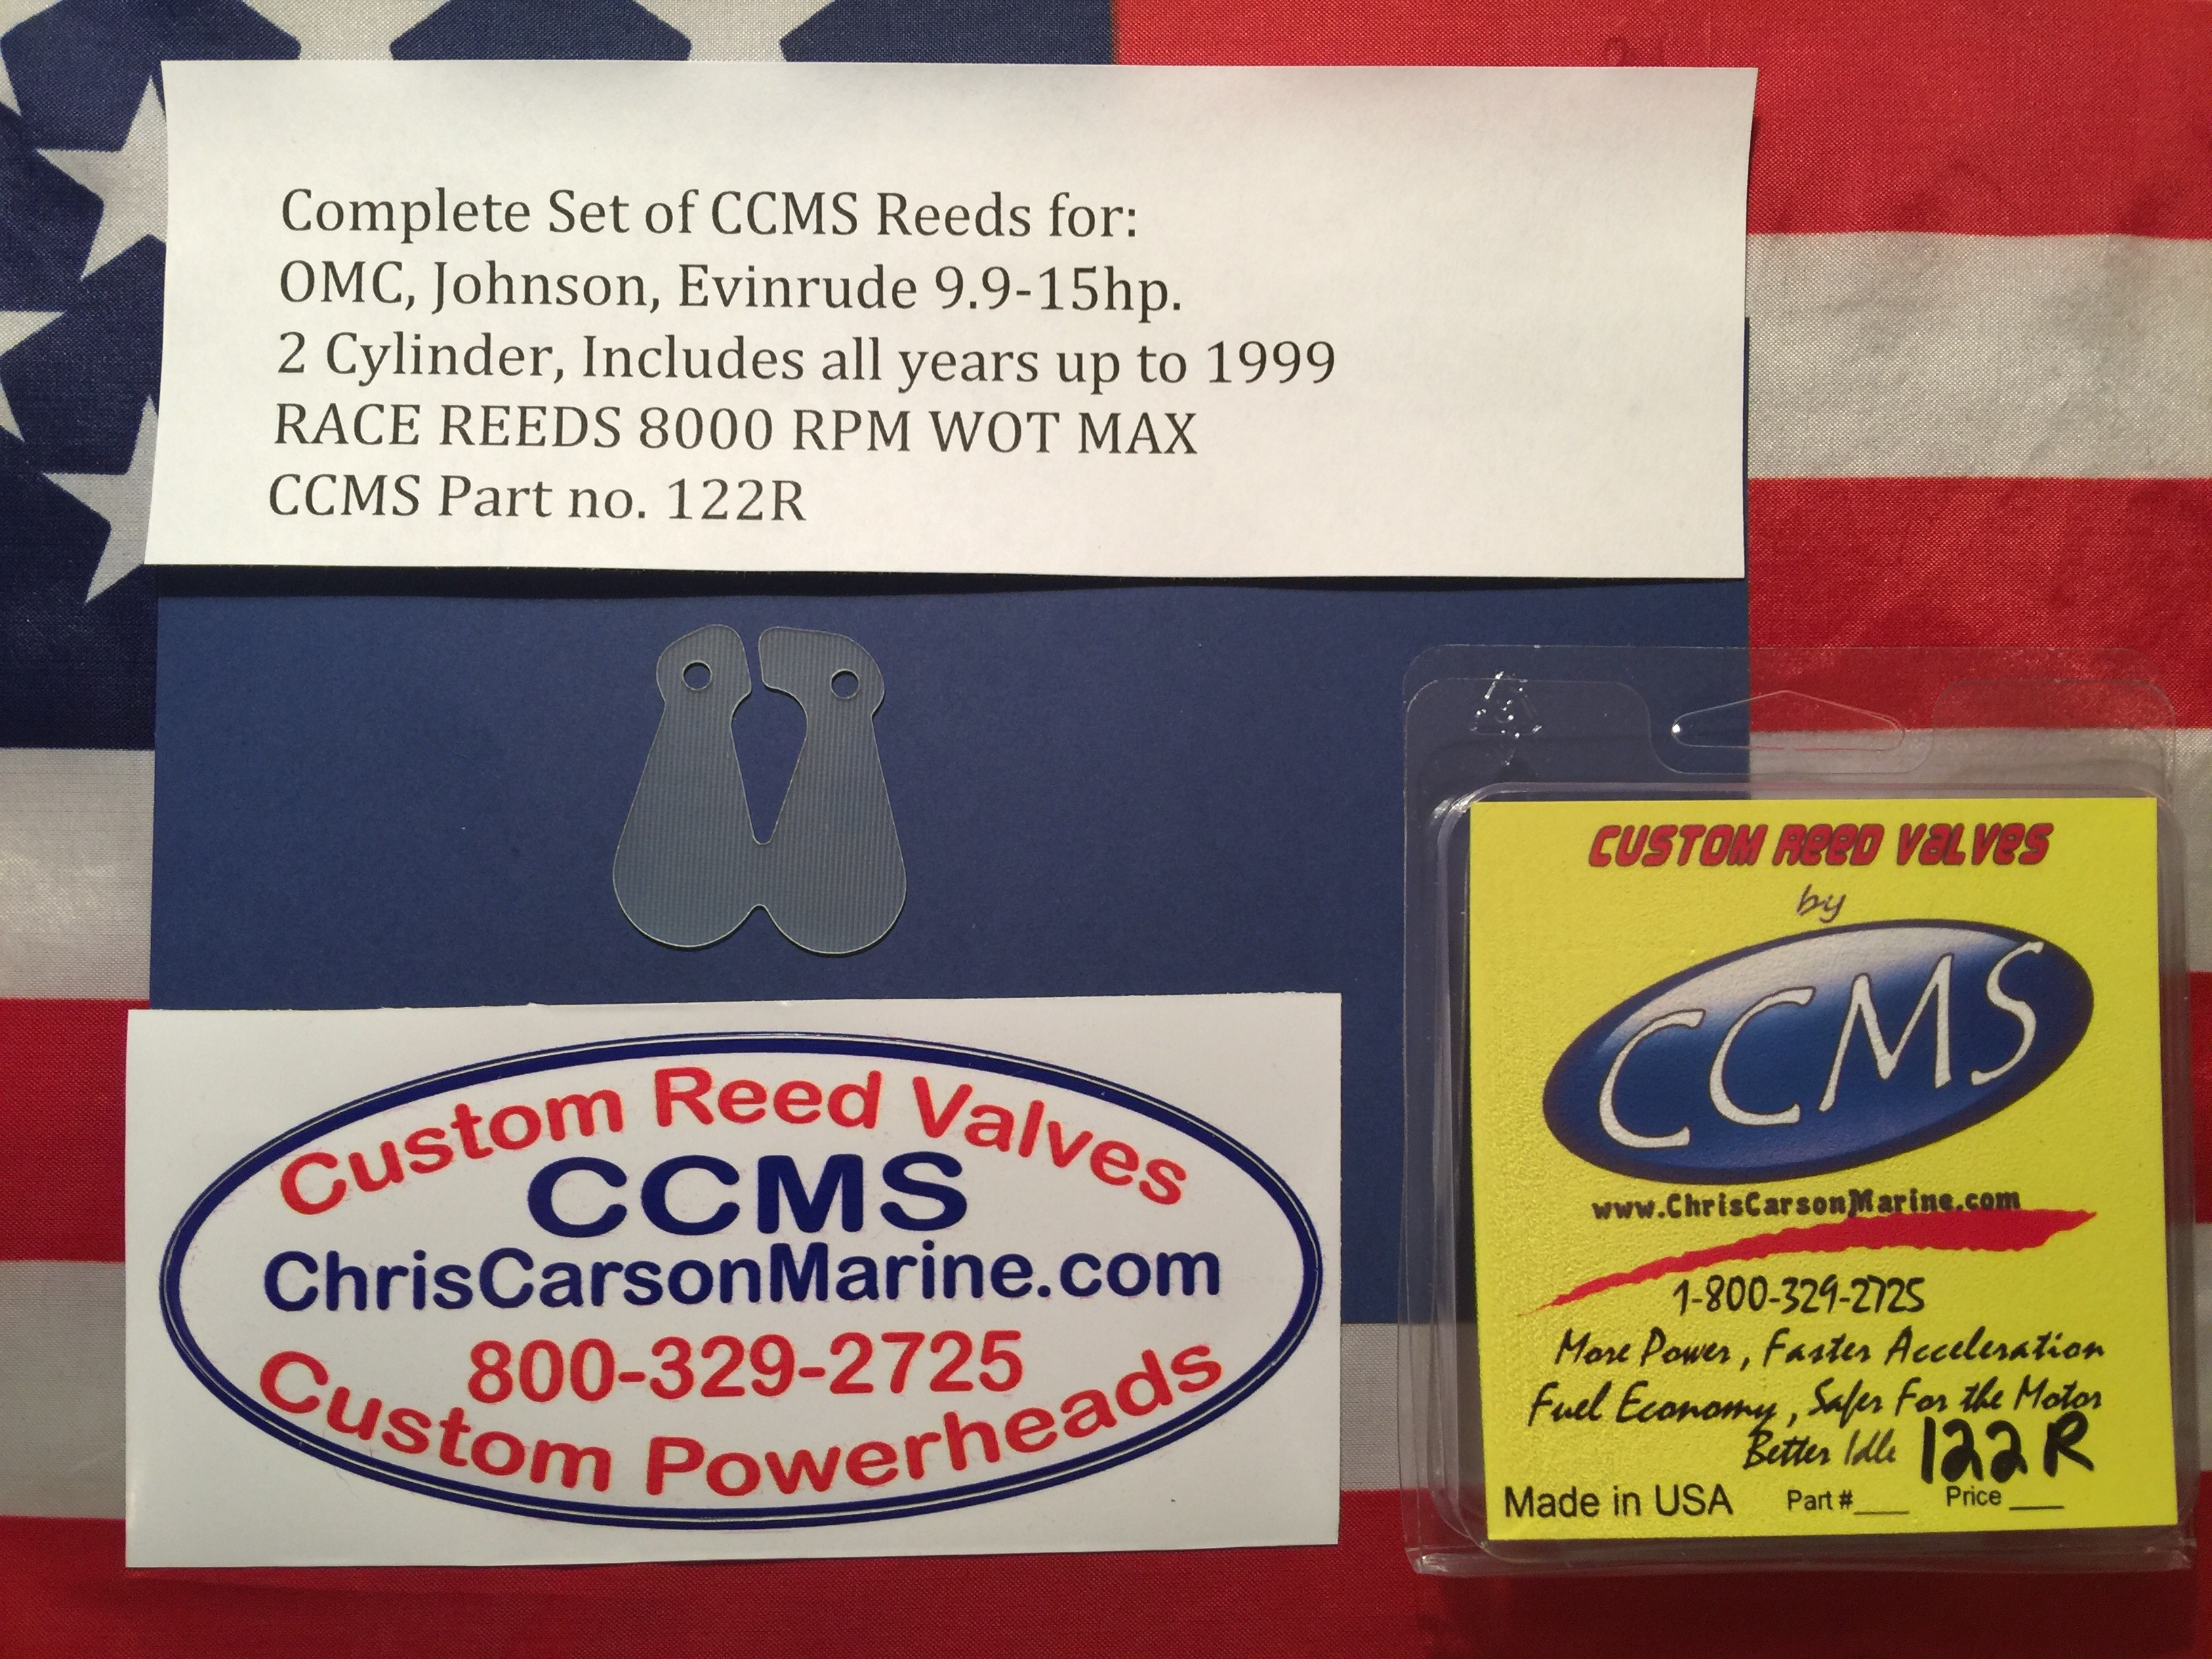 CCMS OMC/Johnson/Evinrude Sport Reed Valves 9 9-15hp  Includes all years up  to 1999 2 cylinder PN 122R